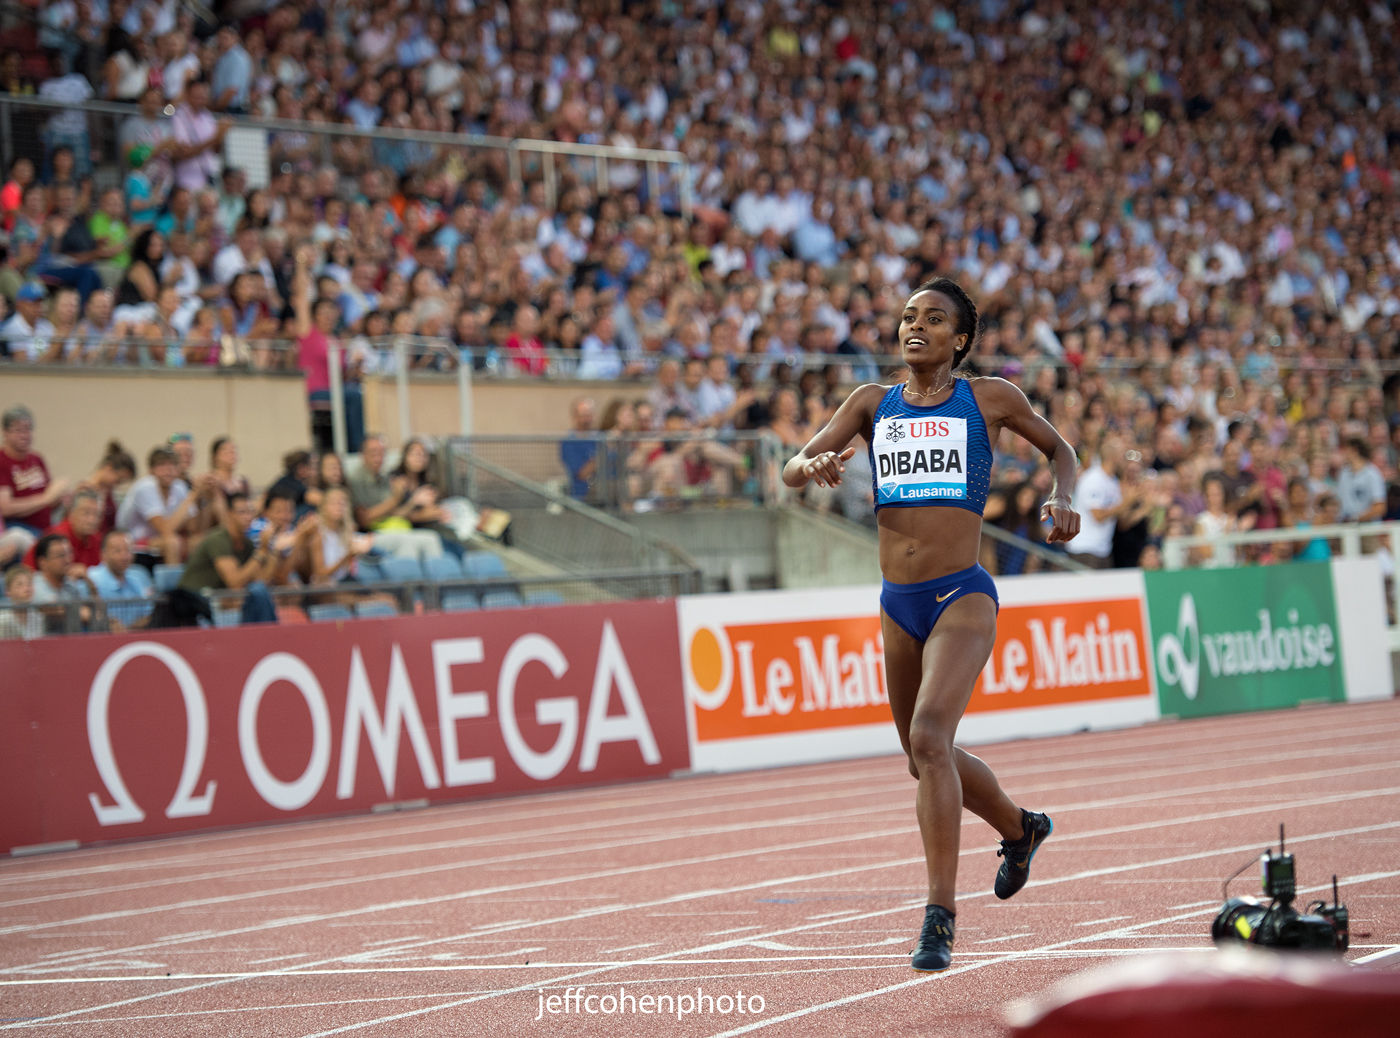 1r2016_athletissima_lausanne_dibaba_3000w_jeff_cohen_photo_1009_web.jpg